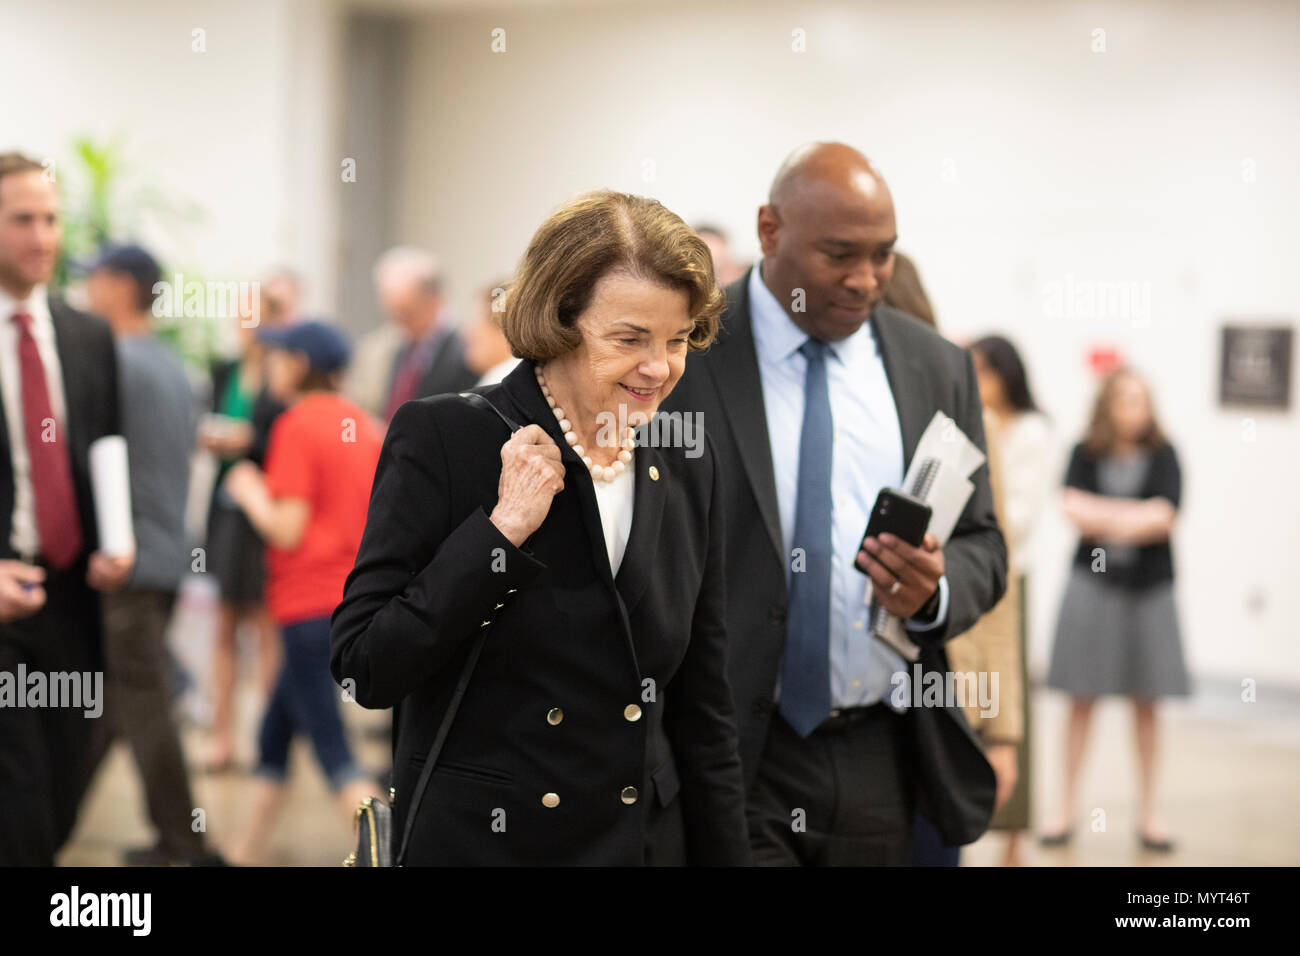 United States Senator Dianne Feinstein, Democrat of California, talks with reporters in the Senate Subway during a Senate vote on Capitol Hill in Washington, DC on July 7, 2018. Credit: Alex Edelman/CNP /MediaPunch - Stock Image